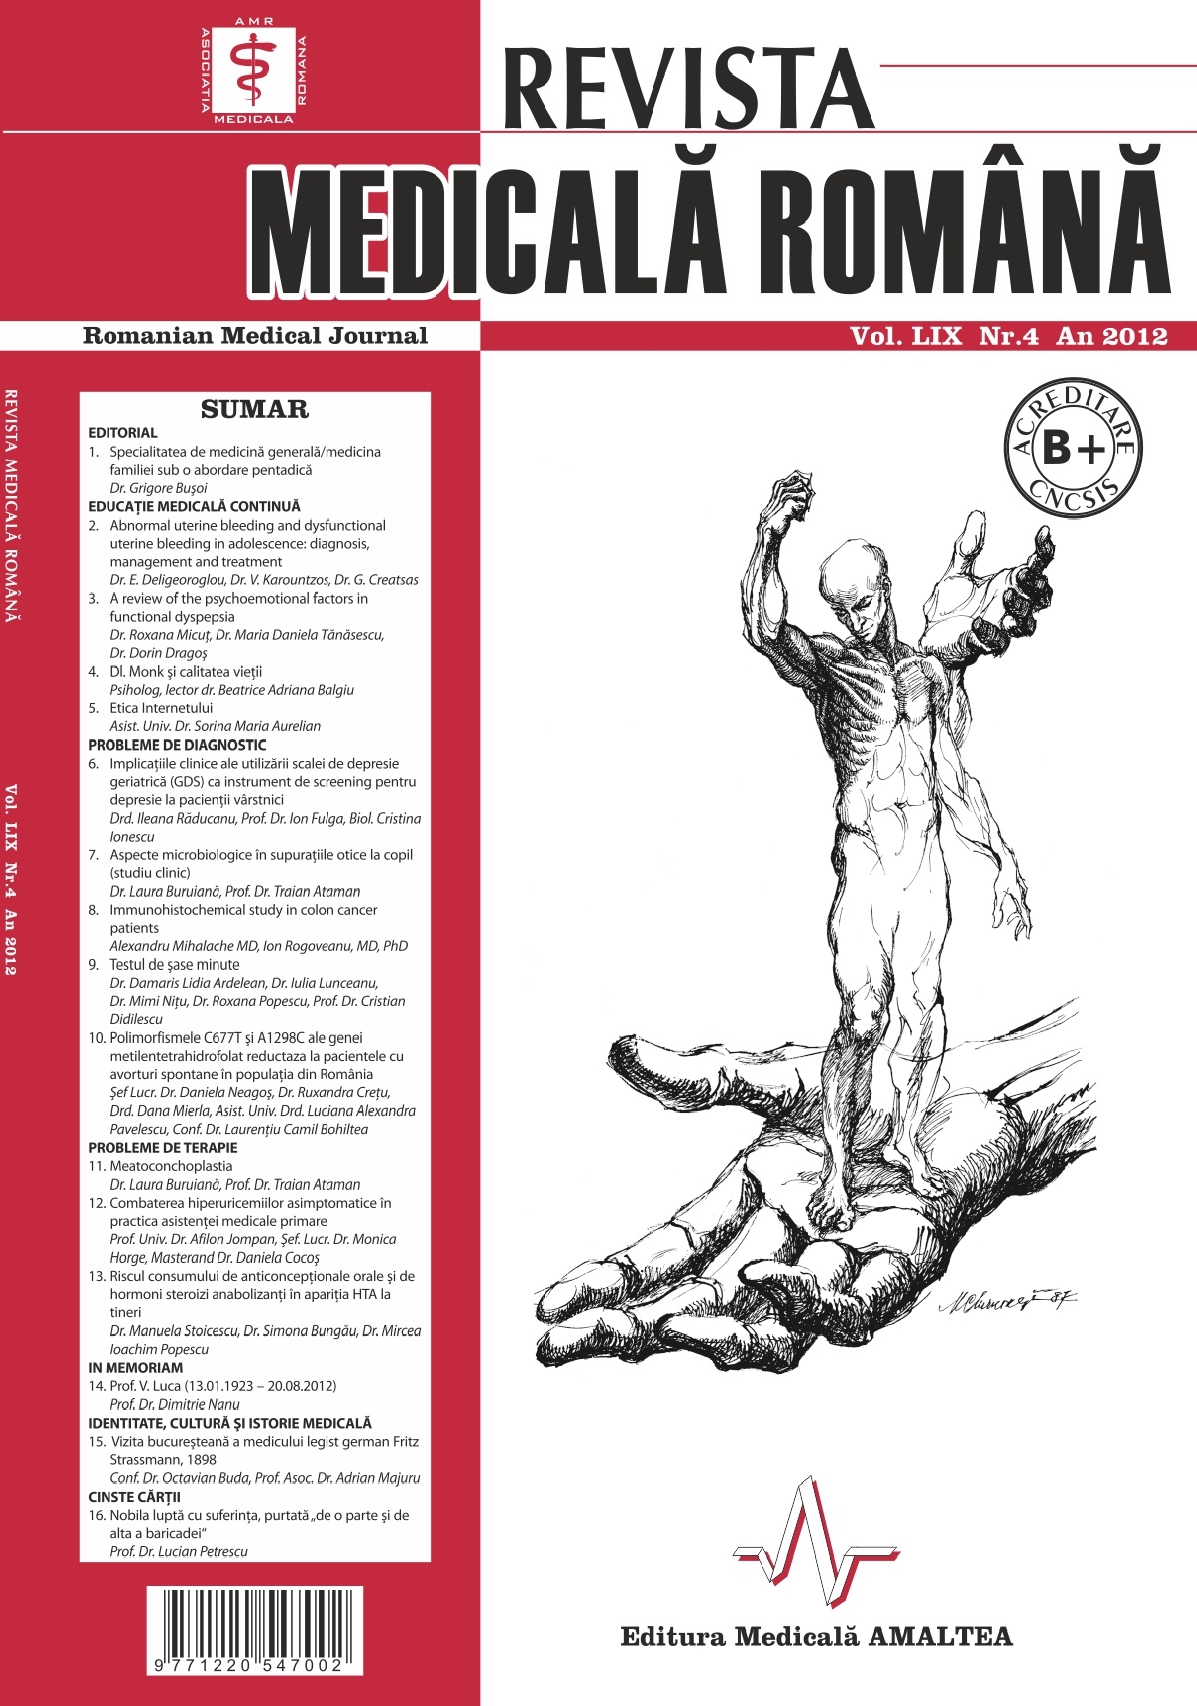 REVISTA MEDICALA ROMANA - Romanian Medical Journal, Vol. LIX, No. 4, Year 2012